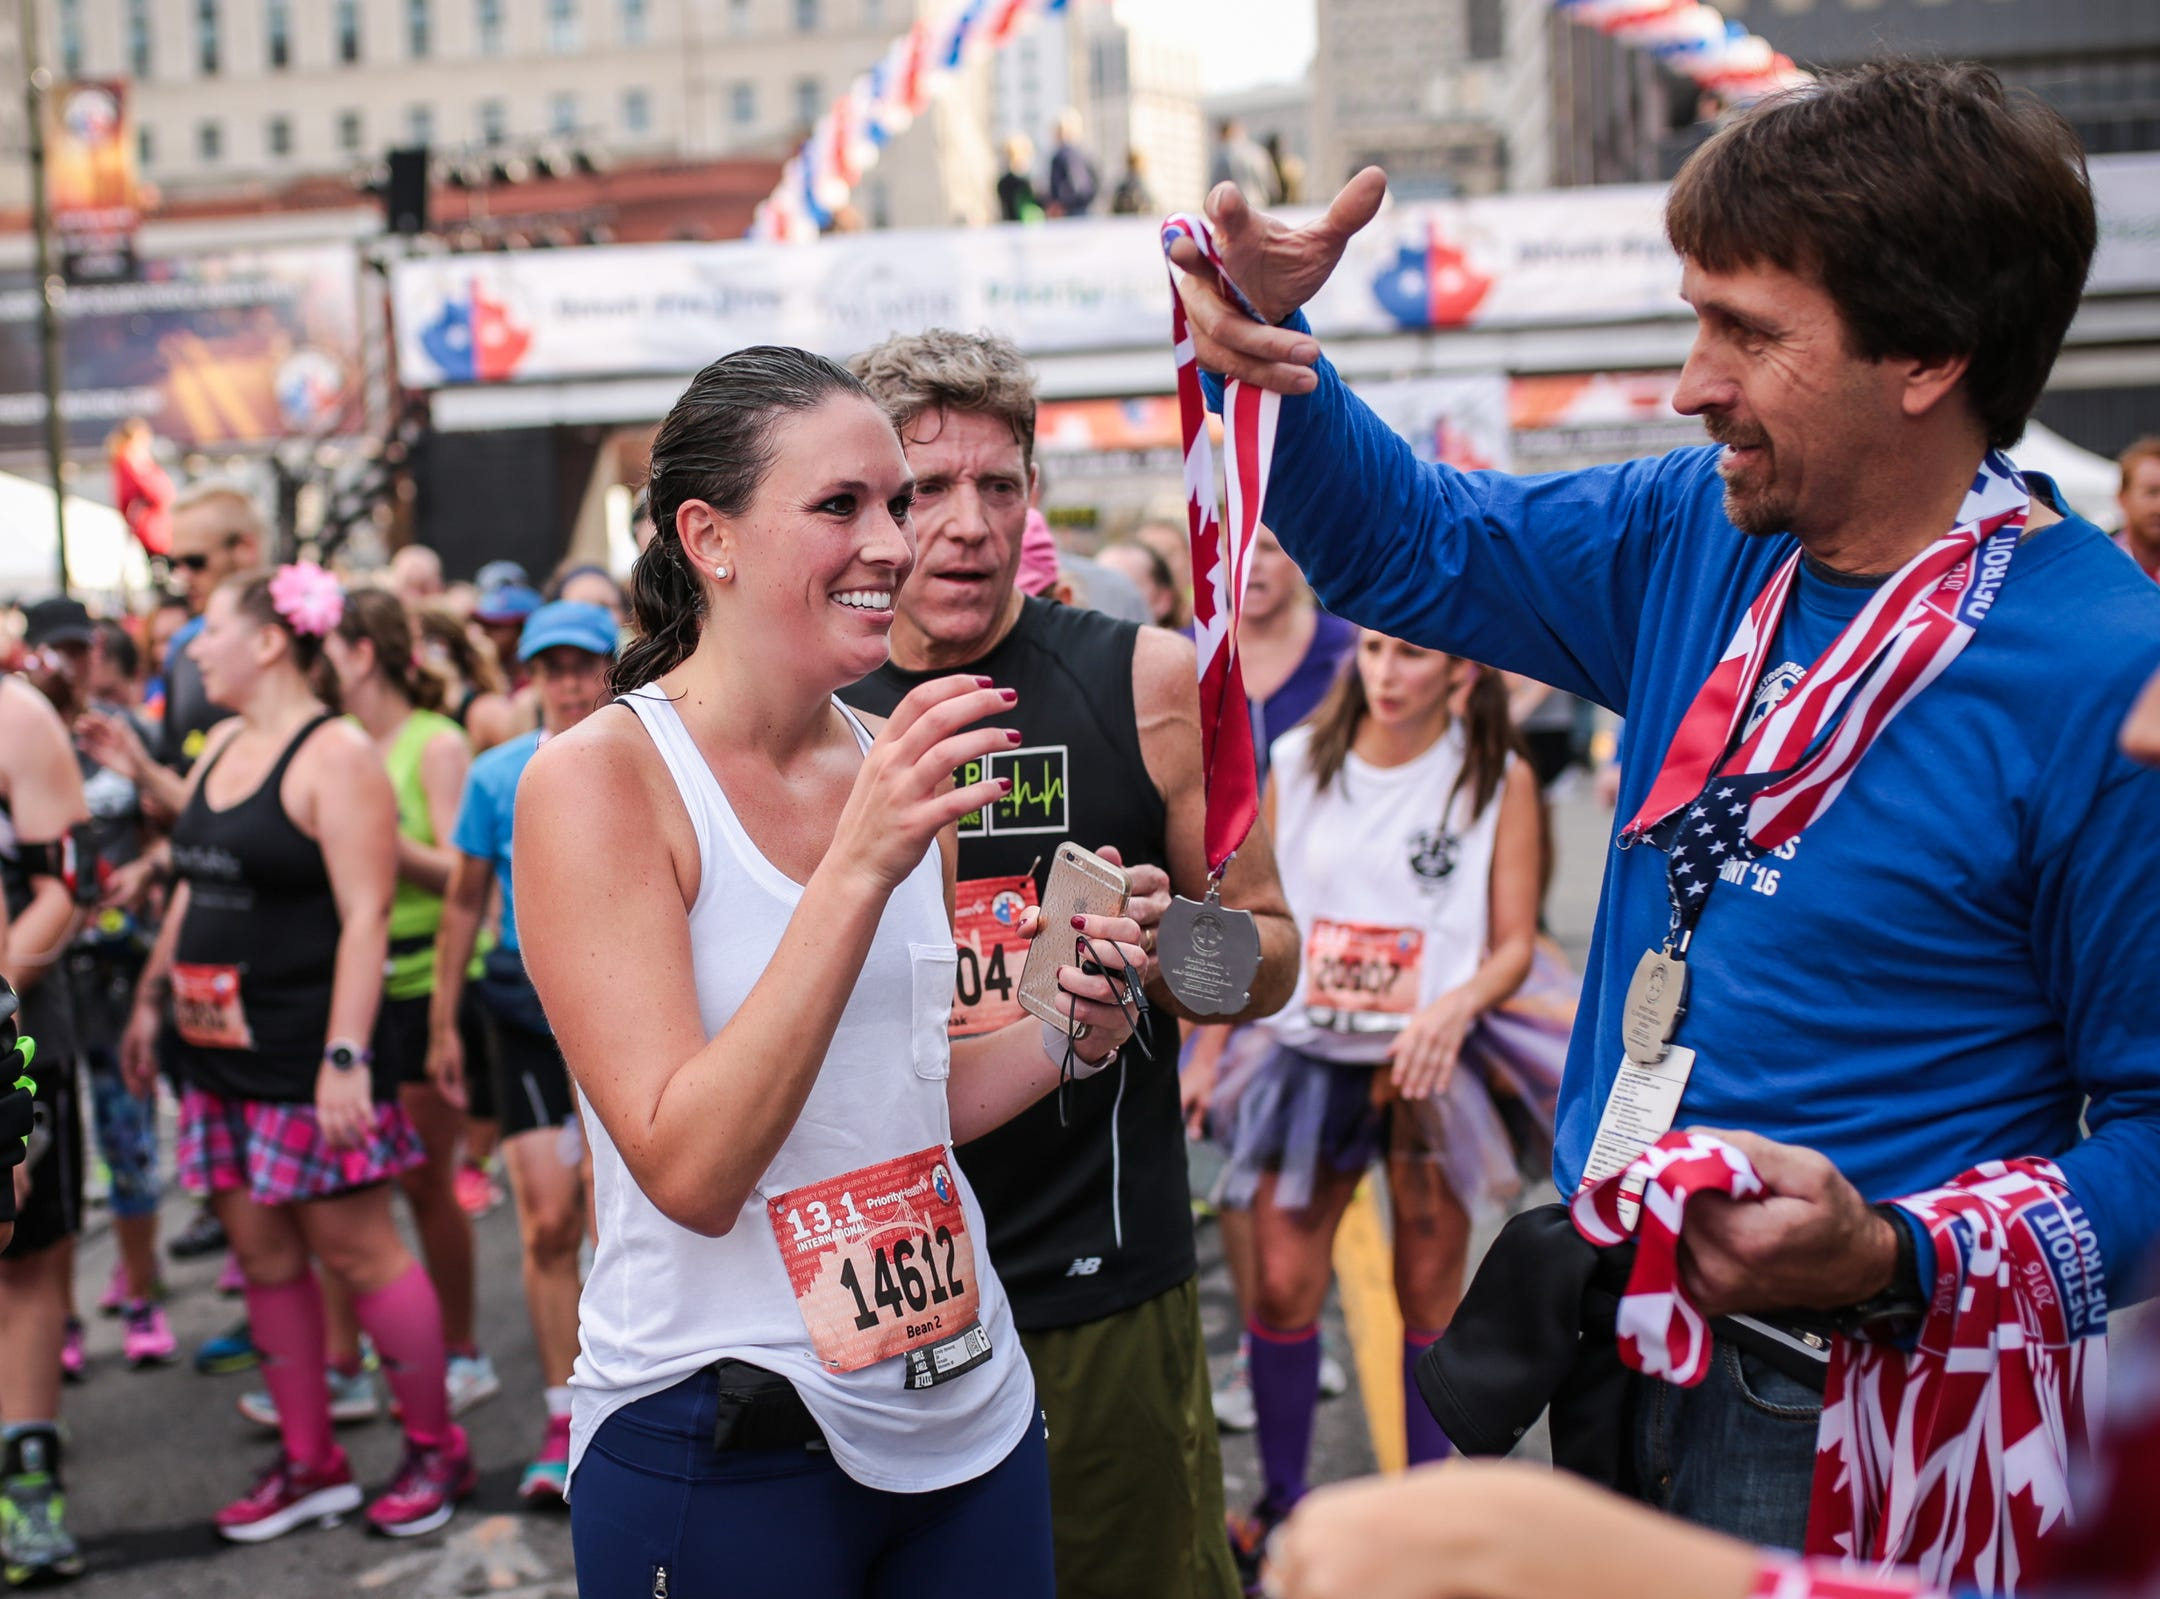 Emily Hyssong, of Ann Arbor, collects her medal after completing the International Half Marathon during the 39th Annual Detroit Free Press/Talmer Bank Marathon in Detroit on Sunday, Oct. 16, 2016.